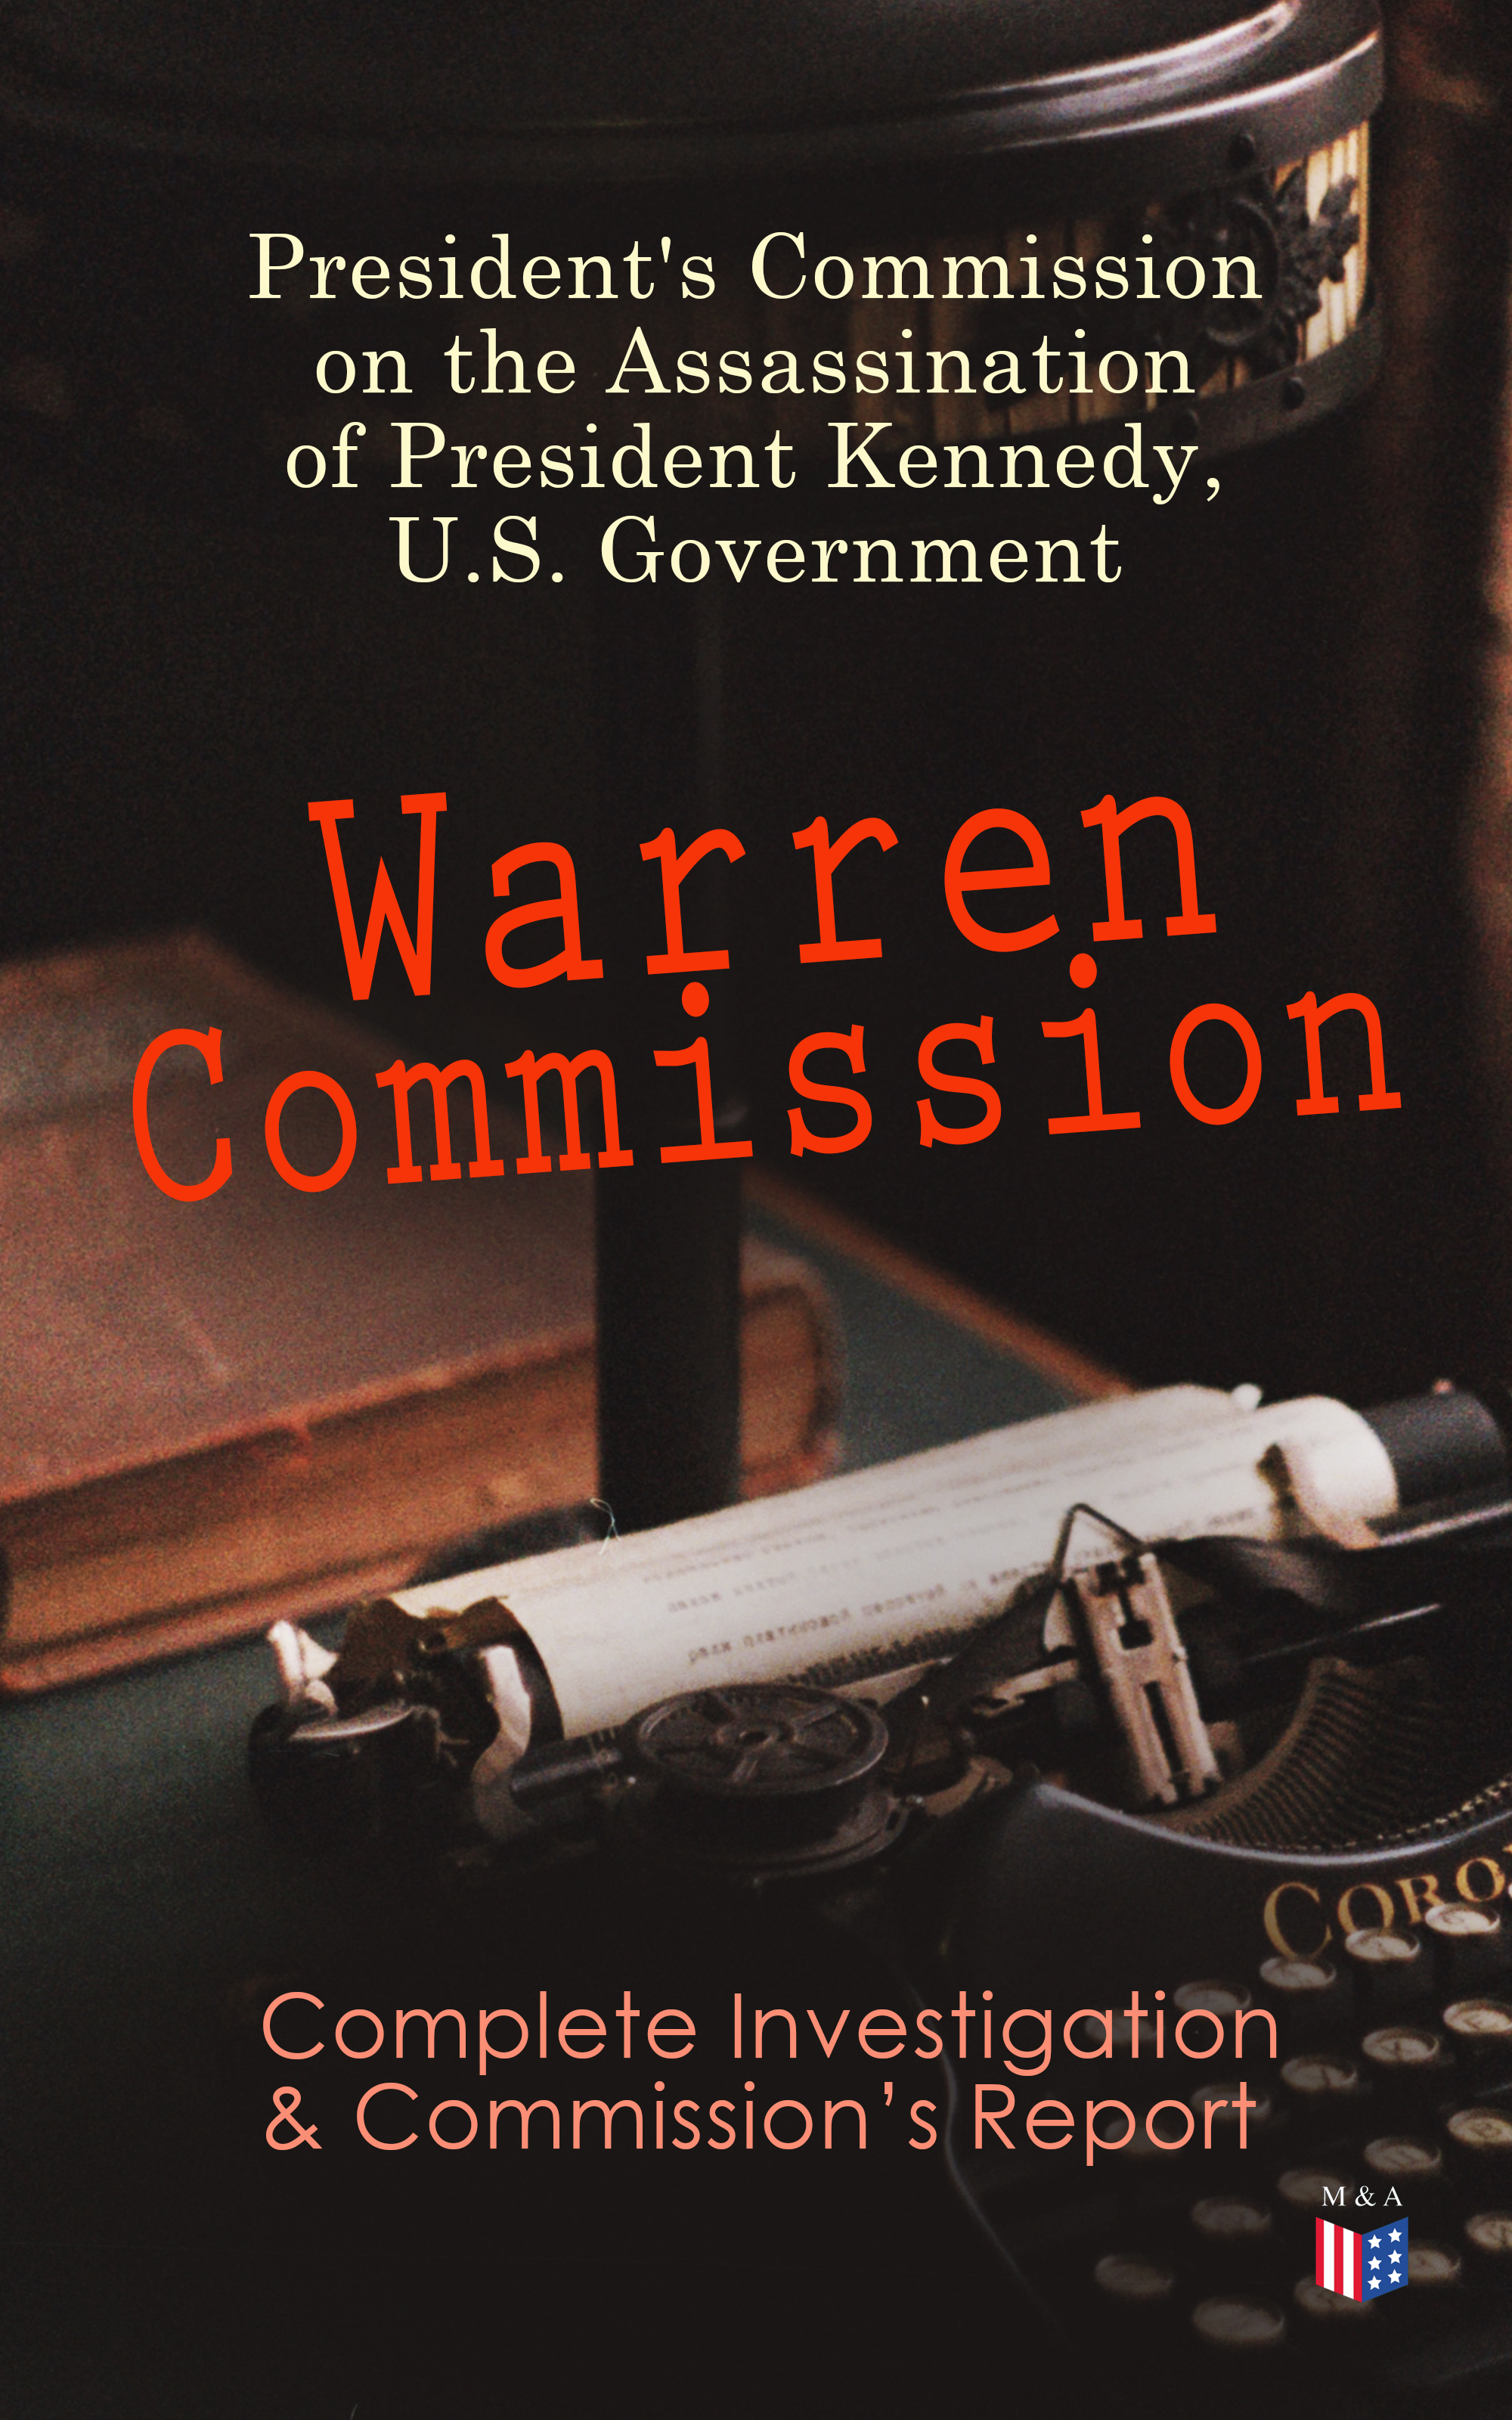 Фото - President's Commission on the Assassination of President Kennedy - U.S. Government Warren Commission: Complete Investigation & Commission's Report брайен кеннеди brian kennedy on song